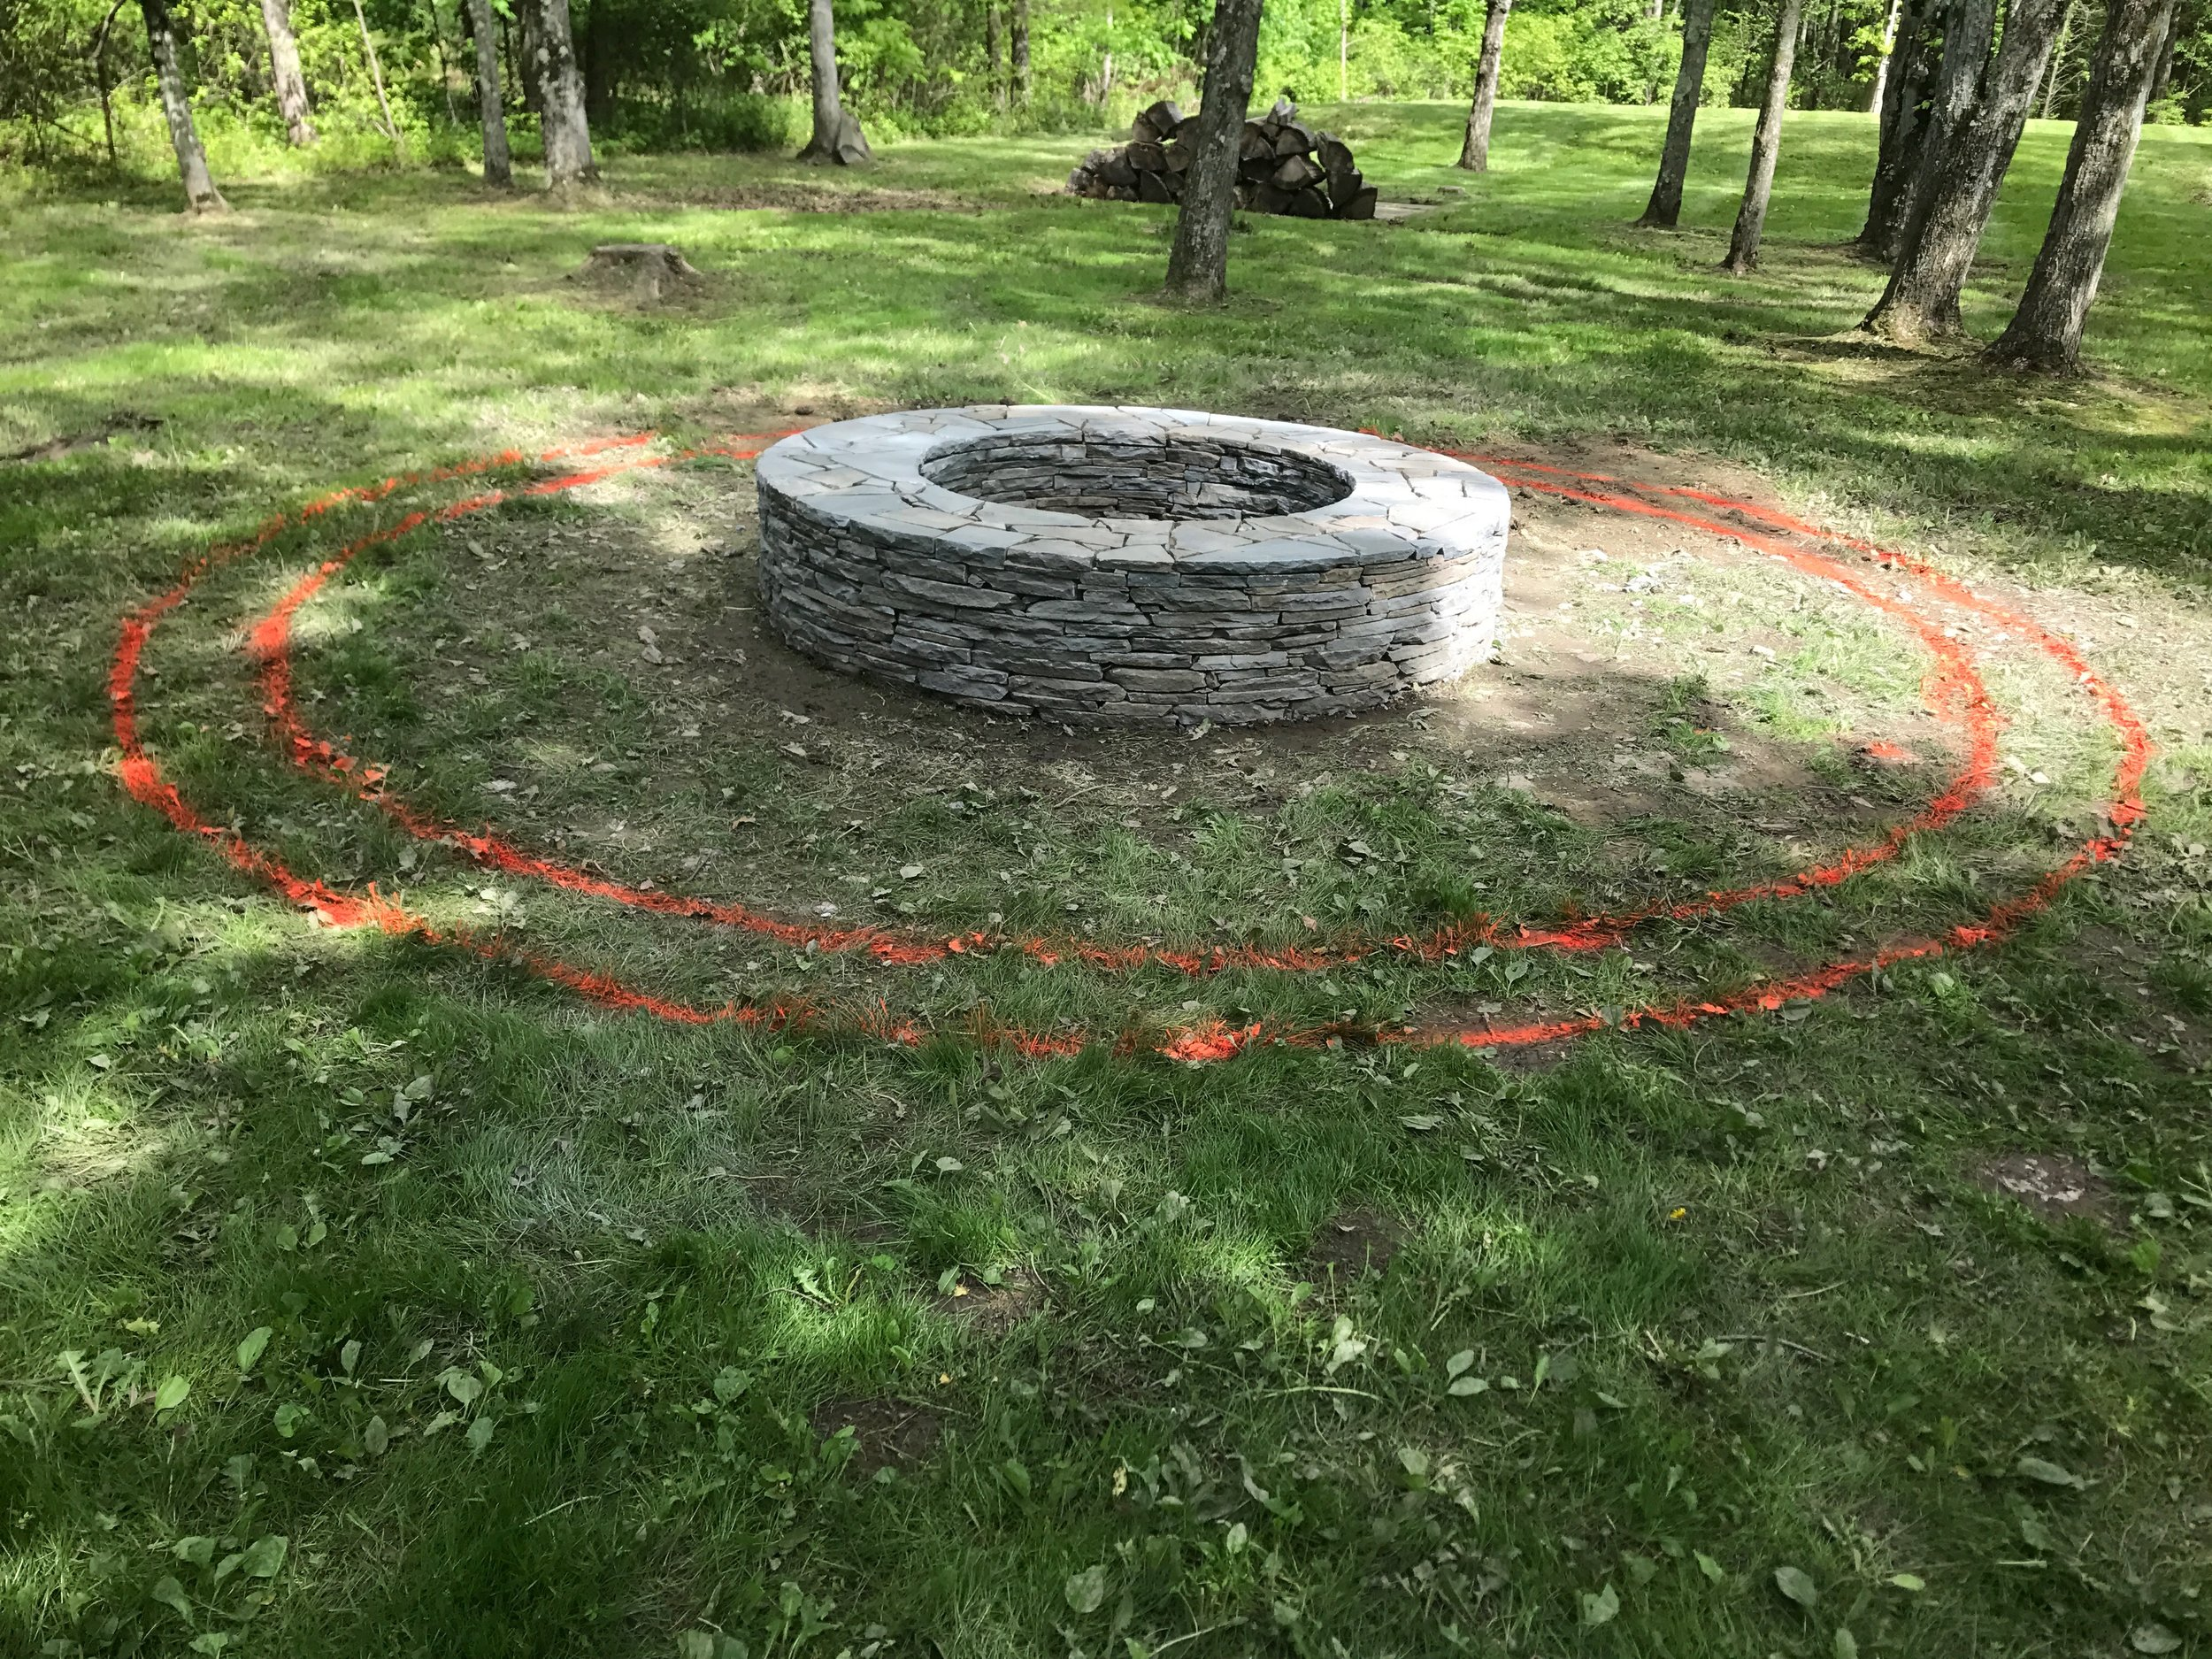 After the actual fire pit was complete, we realized that we needed some type of border to surround the pit and define the area.